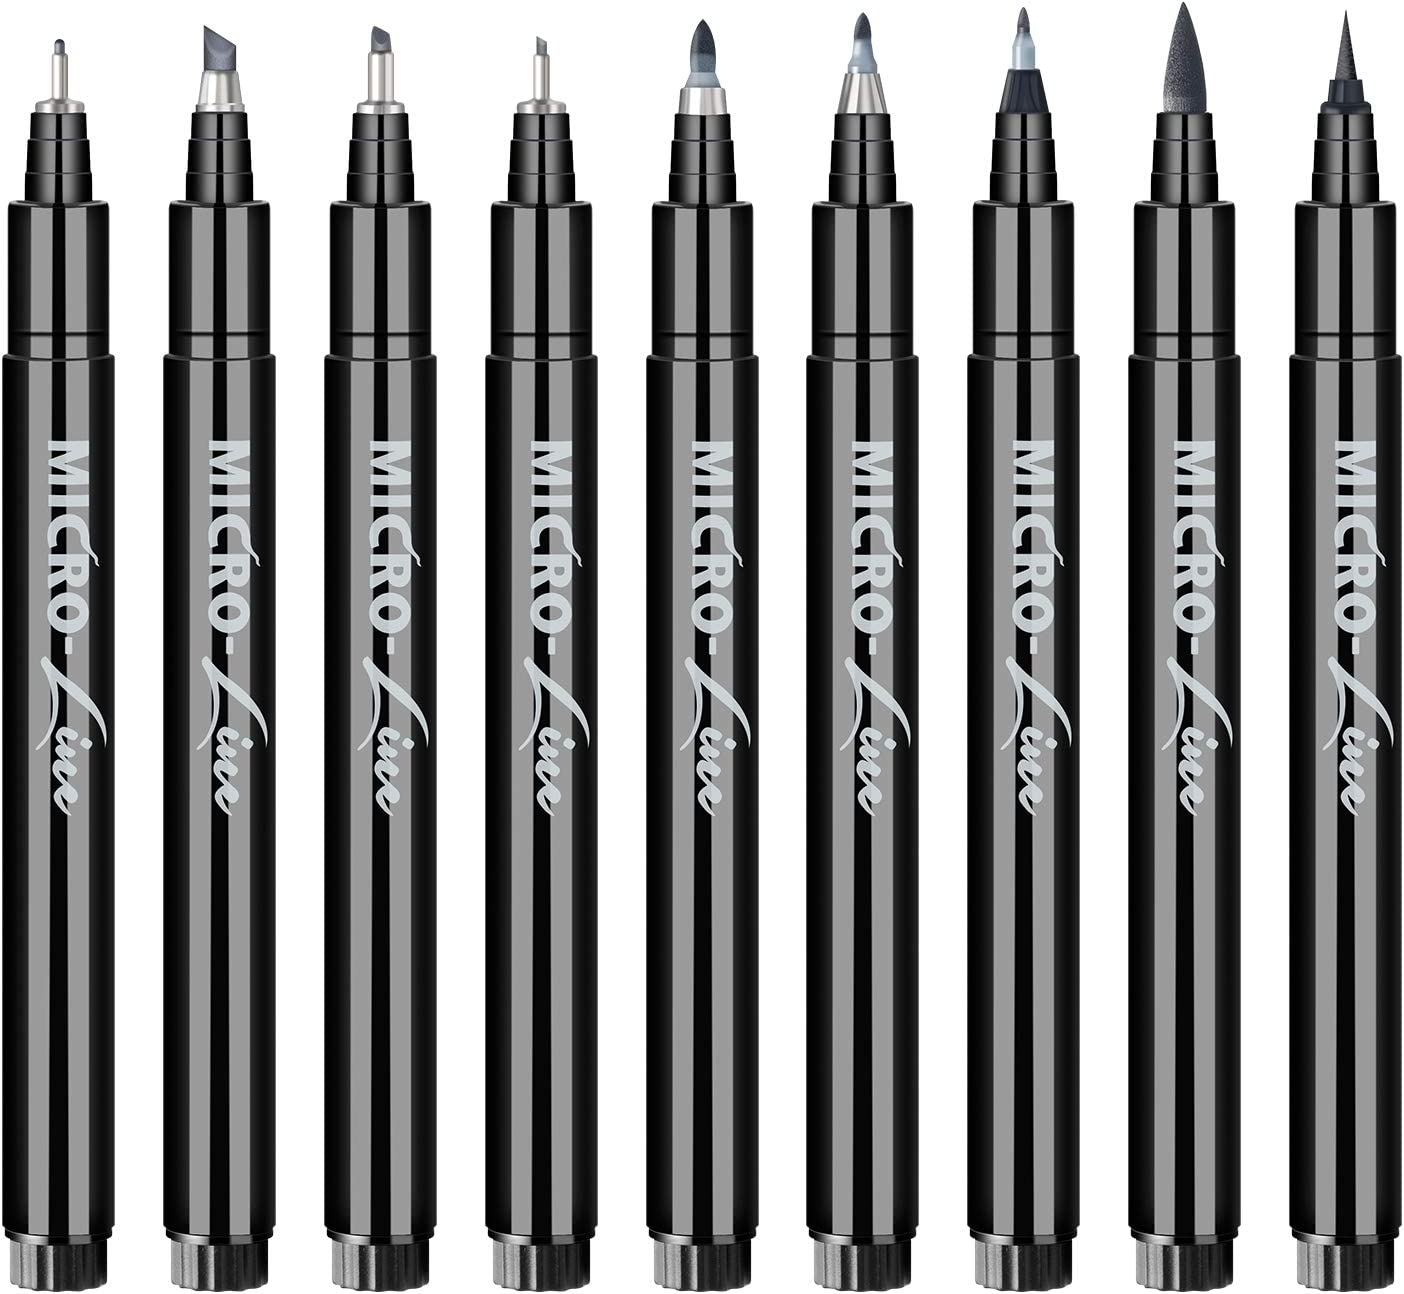 SAKEYR Hand Lettering and Calligraphy Pens: 9 Size Lettering Pens and Markers for Writing Art Drawing Calligraphy Pens for Beginners Sketching Illustrations Signature Black Markers for Drawing